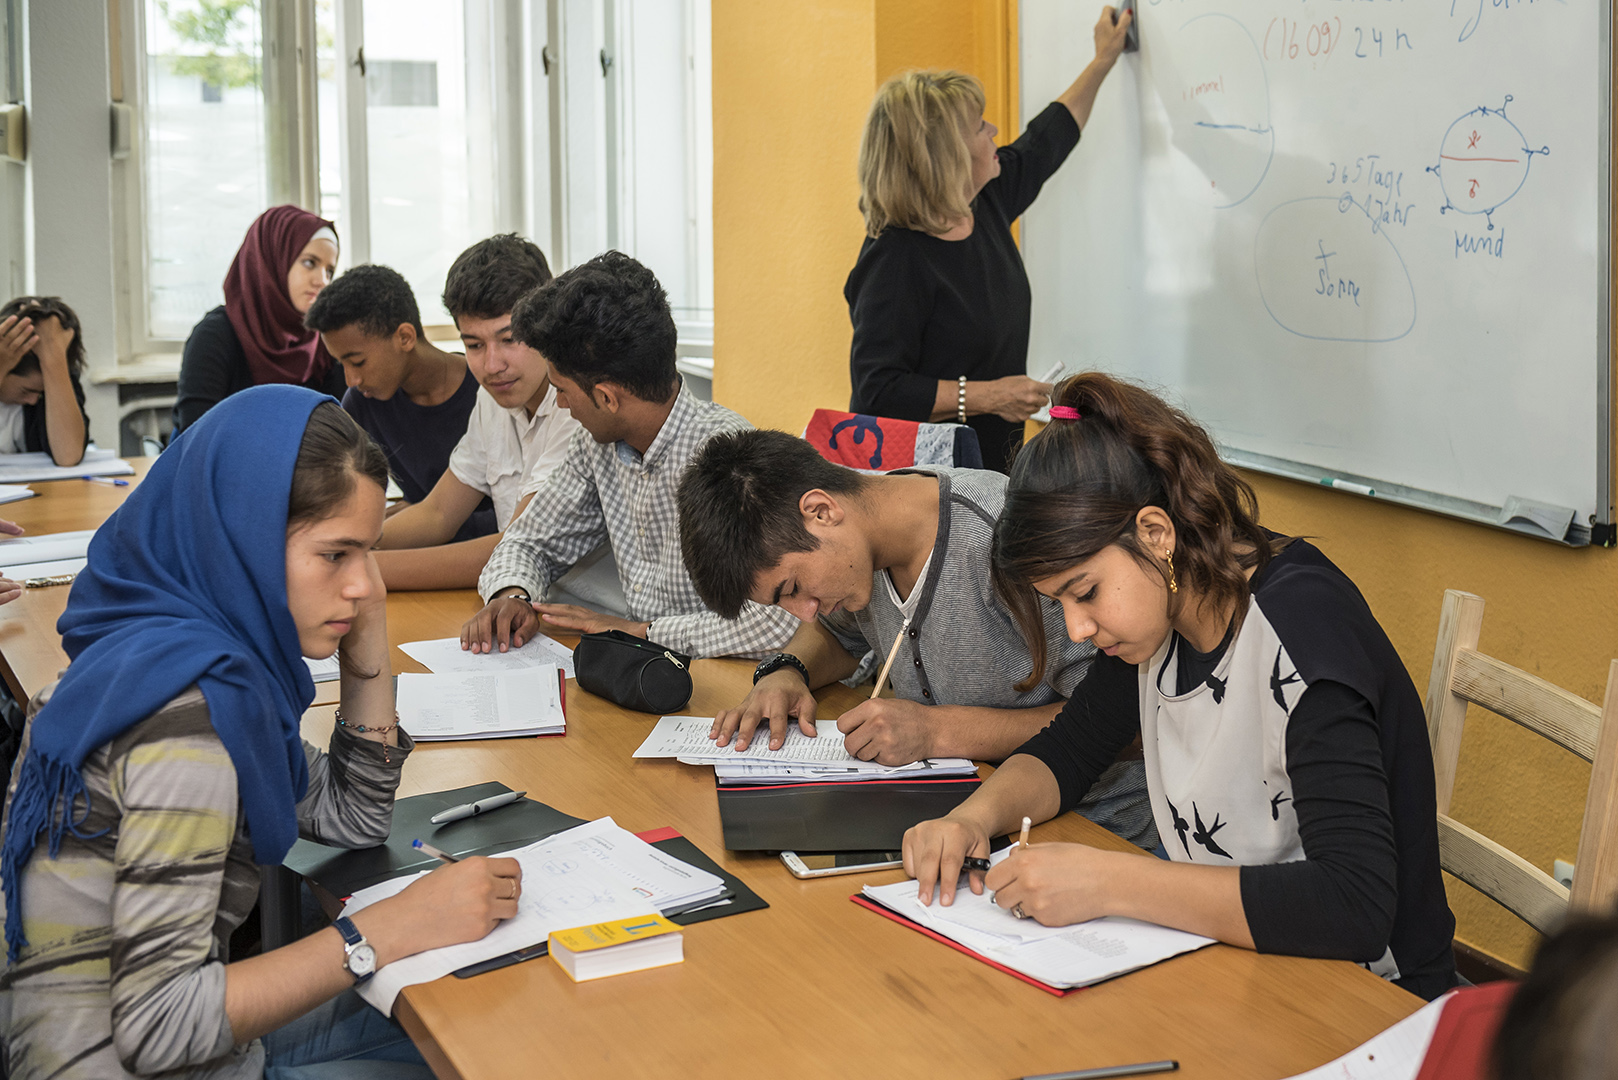 """Participants at the refugee summer school at """"lehrreich"""" in Berlin-Wilmersdorf. Learning the local language is a vital step to continuing a disrupted education. Summer schools help keep young refugees on track to join regular school classes. Germany, Berlin, 29/08/2016"""